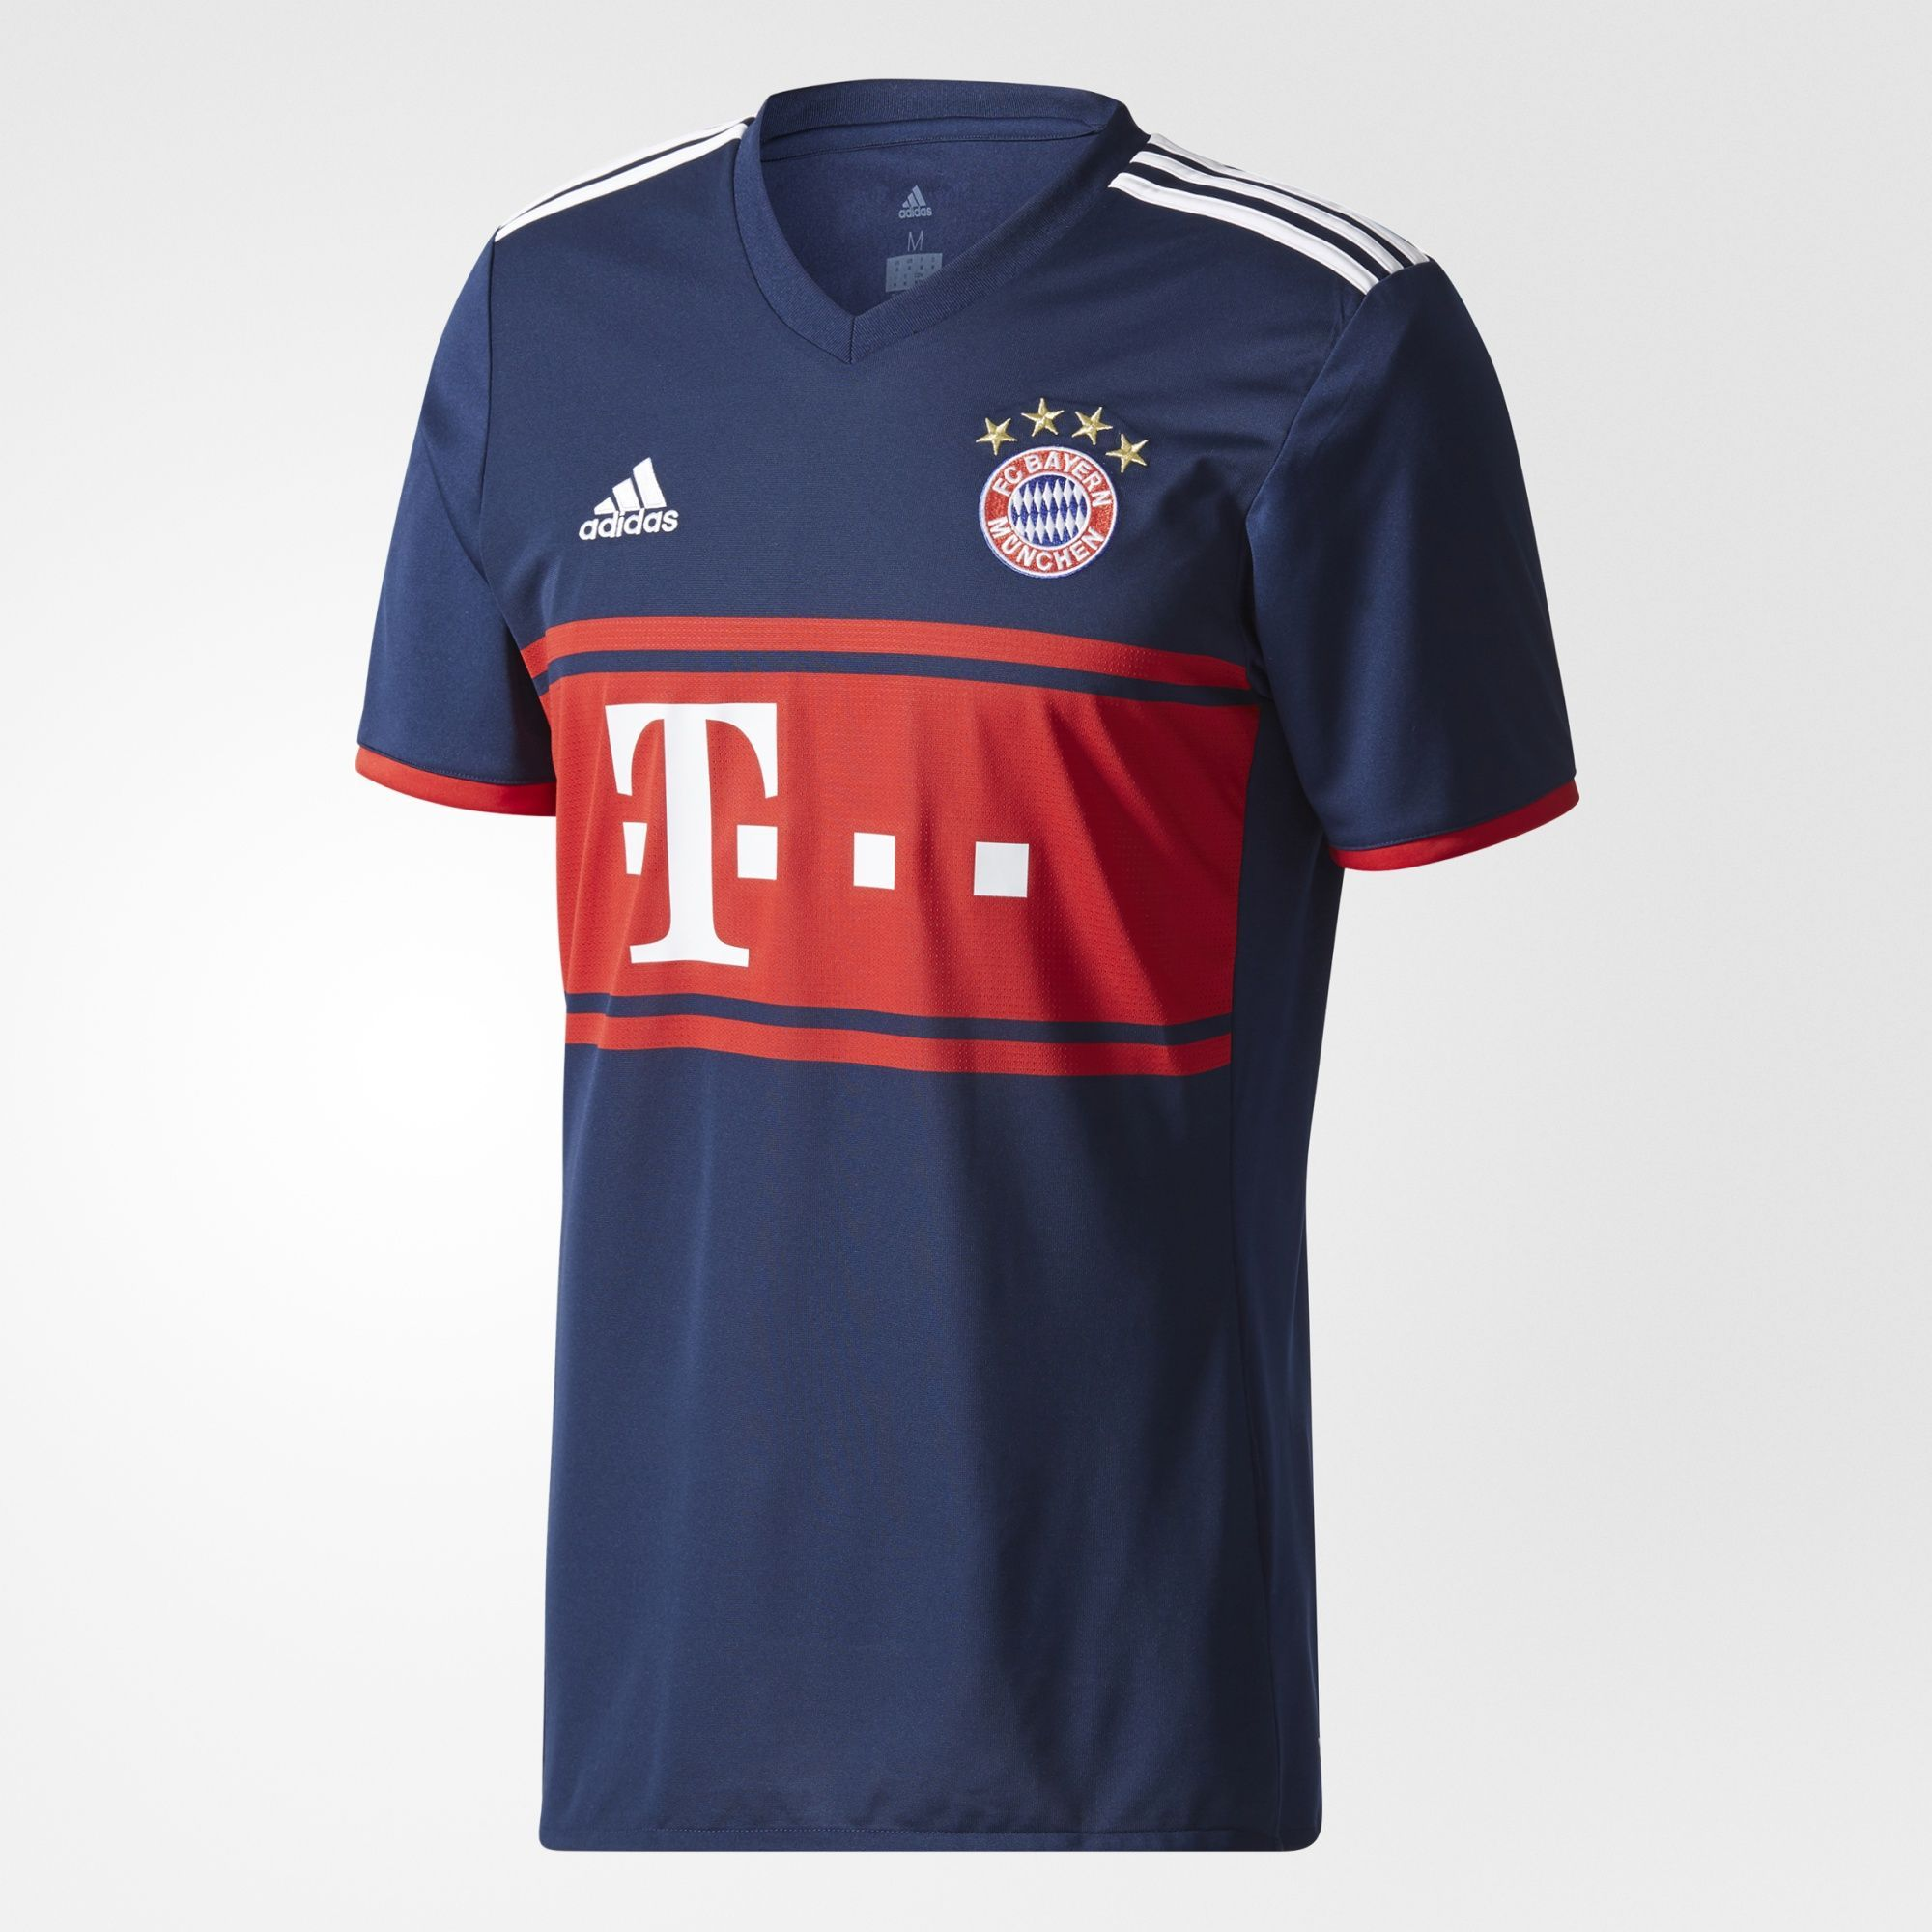 aa1e7959c5b adidas Bayern Munich Away Jersey 17/18 | Launches: Kits and Jerseys ...